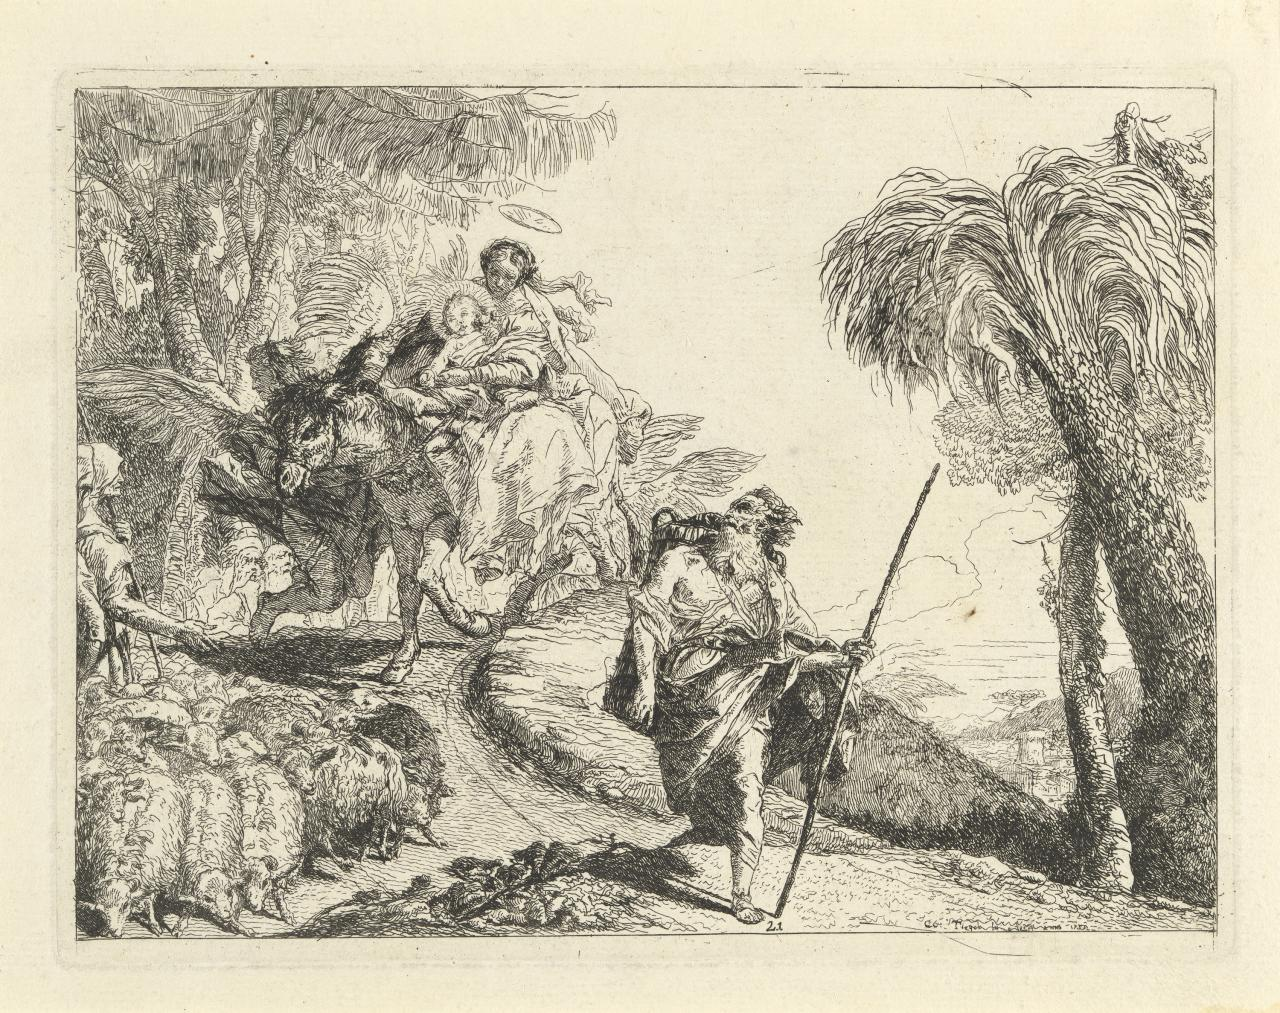 The Flight with Joseph in the foreground (Flight into Egypt)